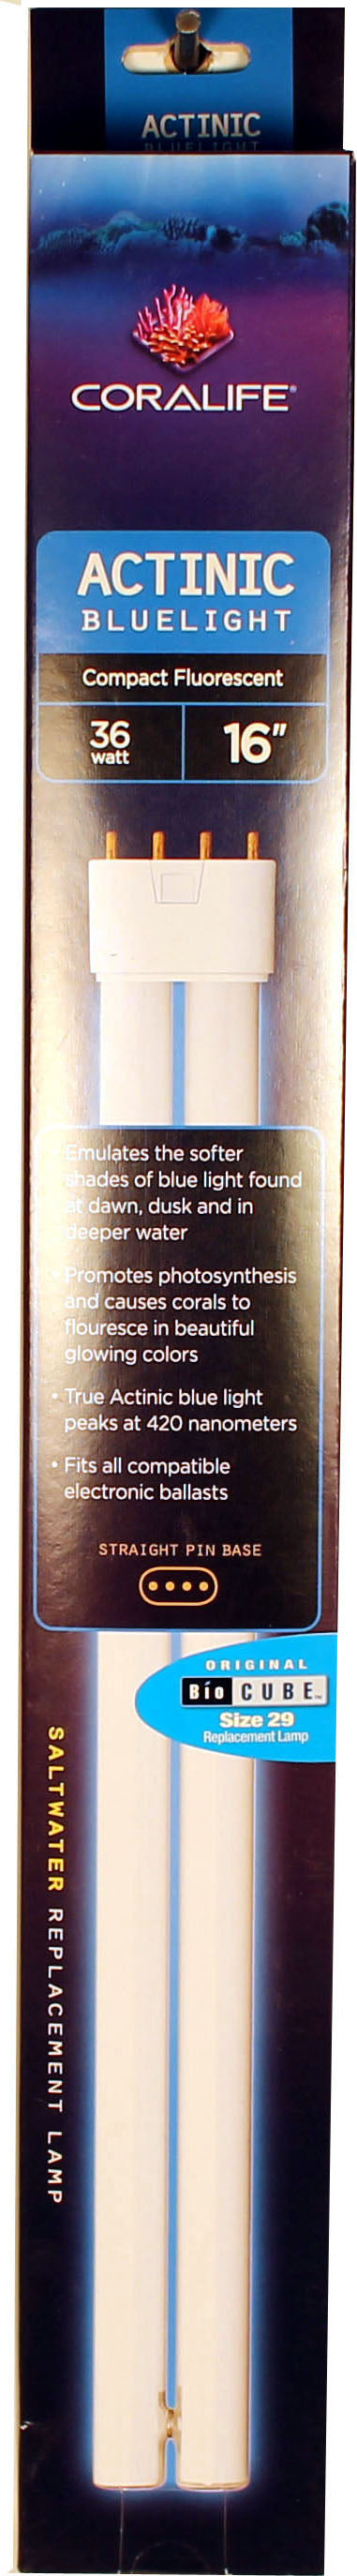 Bio Cube Replacement Lamp Actinic